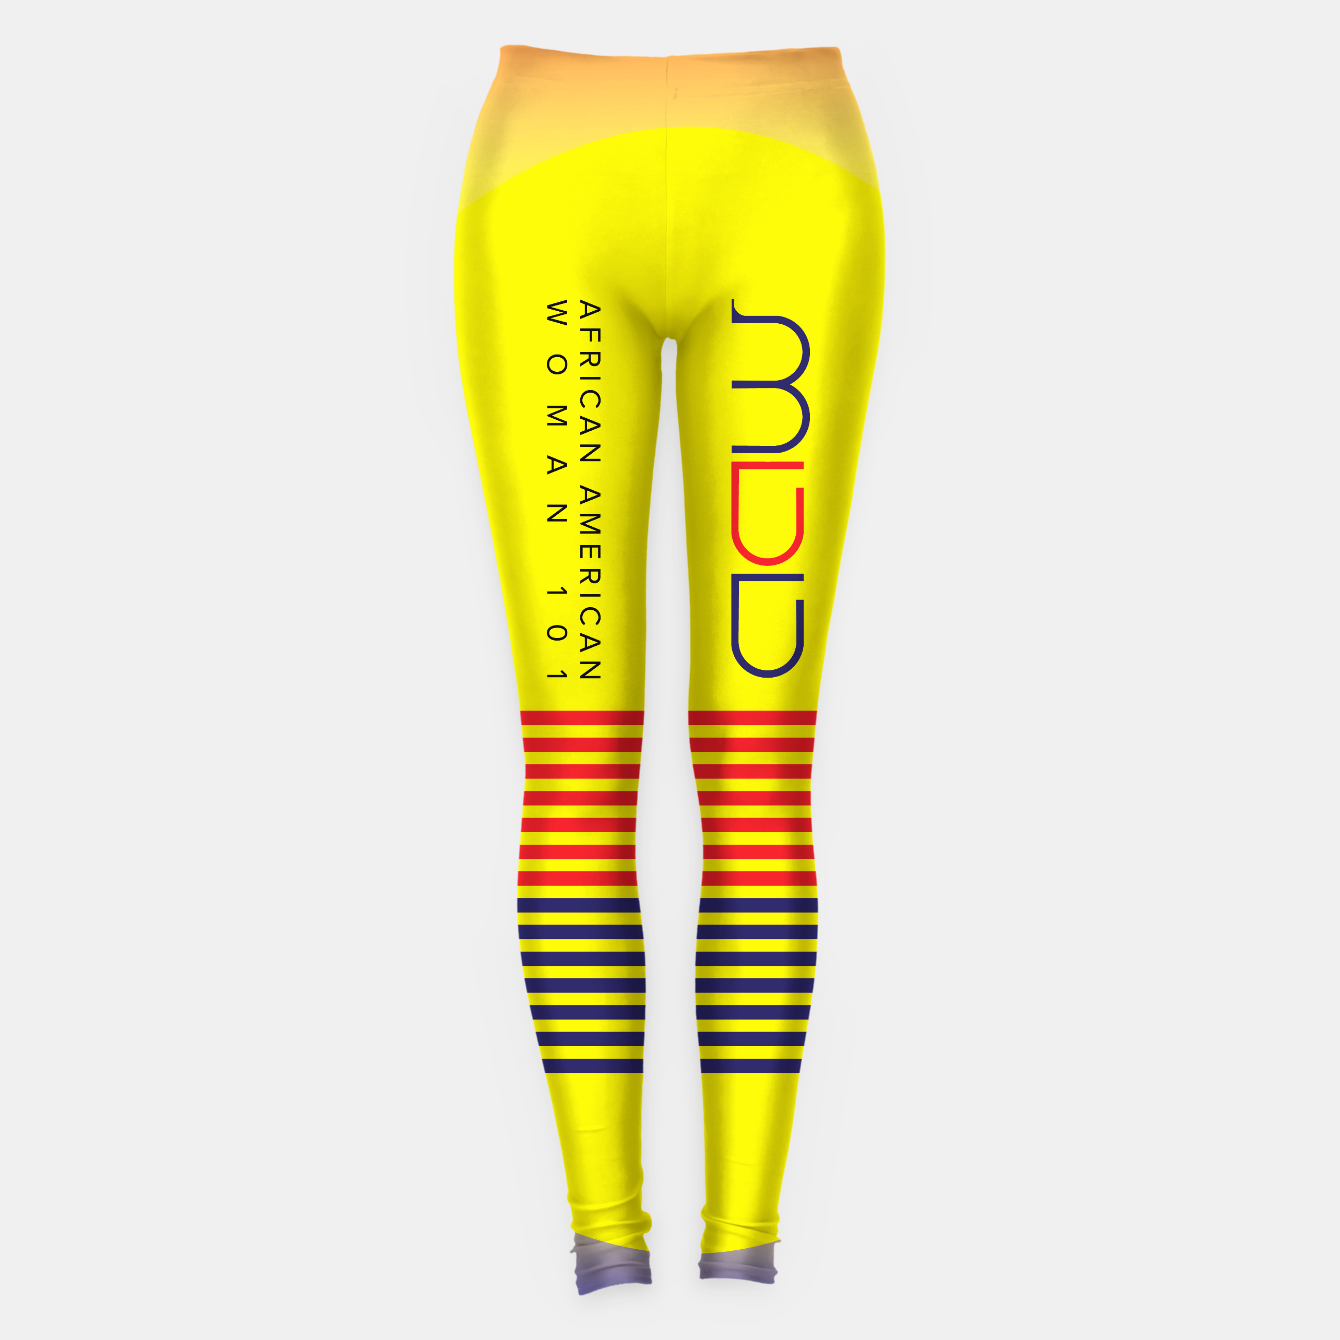 fdf31b3126943 Image of AAW101 Sports Wear - Live Heroes